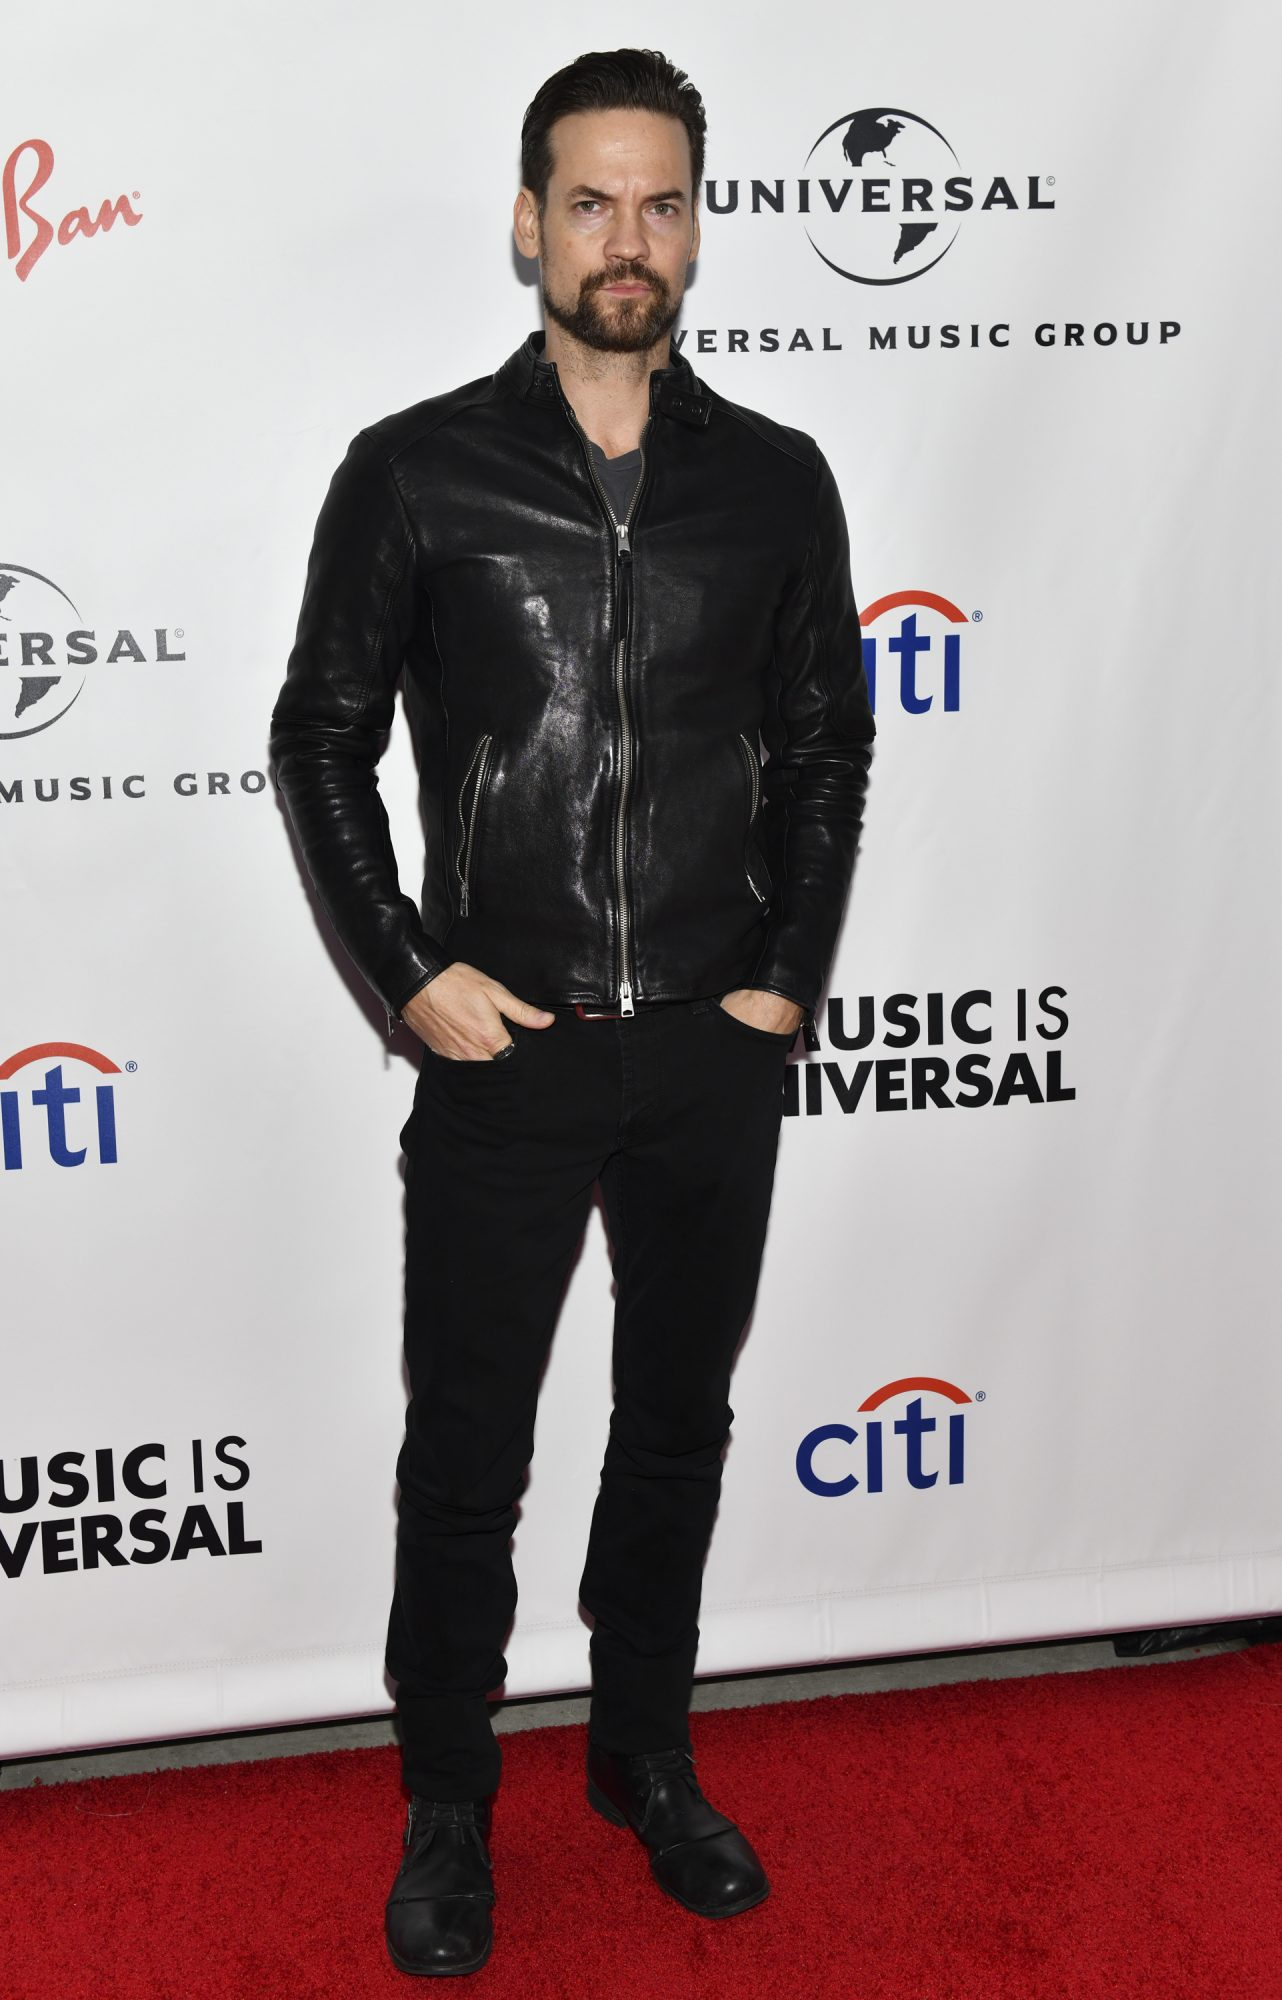 LOS ANGELES, CALIFORNIA - FEBRUARY 10: Shane West attends the Universal Music Group's 2019 After Party To Celebrate The GRAMMYs at ROW DTLA on February 10, 2019 in Los Angeles, California. (Photo by Rodin Eckenroth/Getty Images)